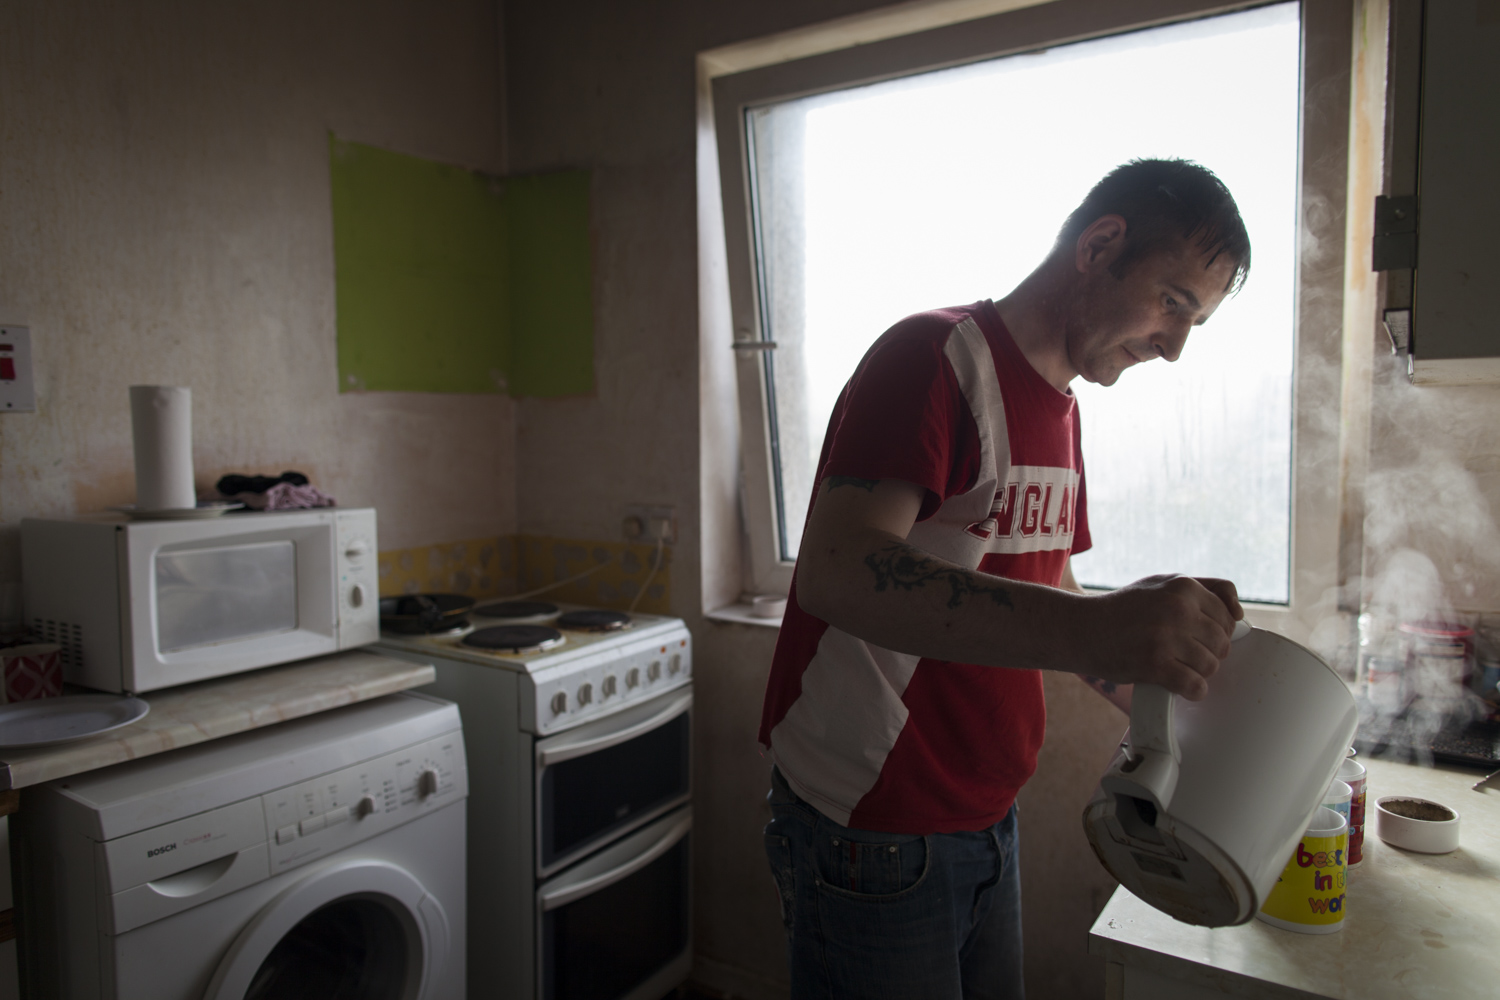 """Sean in his kitchen.  """" Sean didn't want the help, but I did. I needed it, and it helped me sort my head out. And then after I'd got off the drugs and got clean and stayed away from it all…"""""""